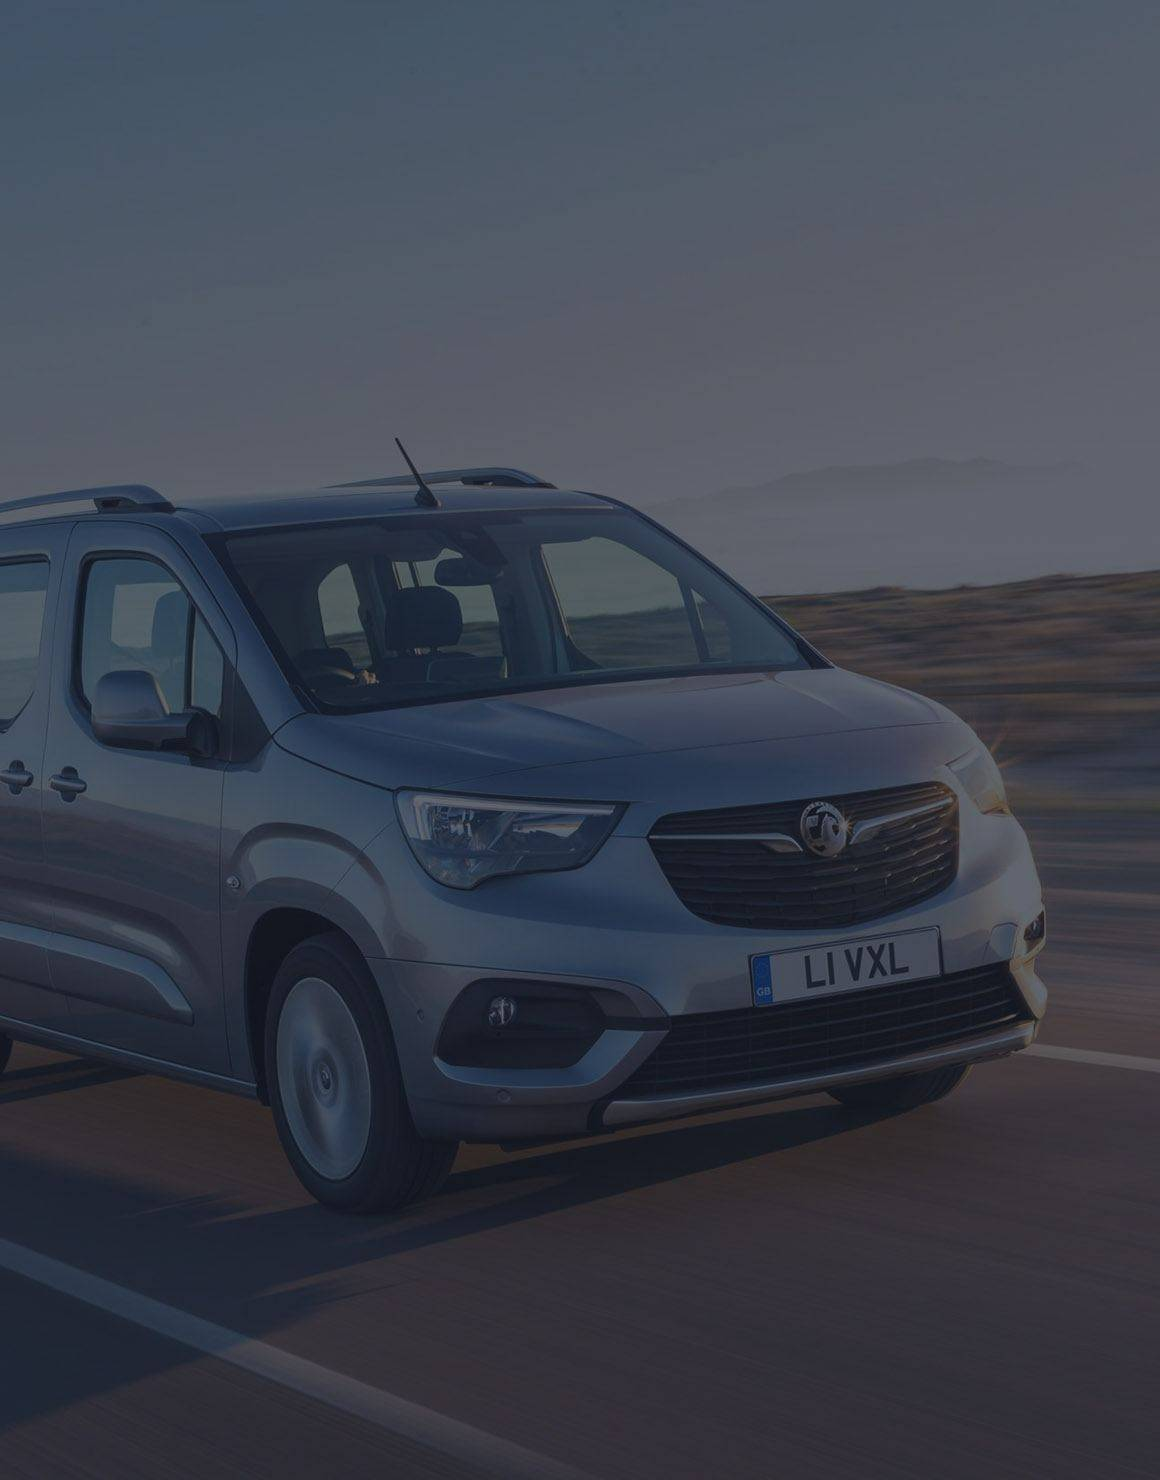 Compare Vauxhall car finance from leading brands